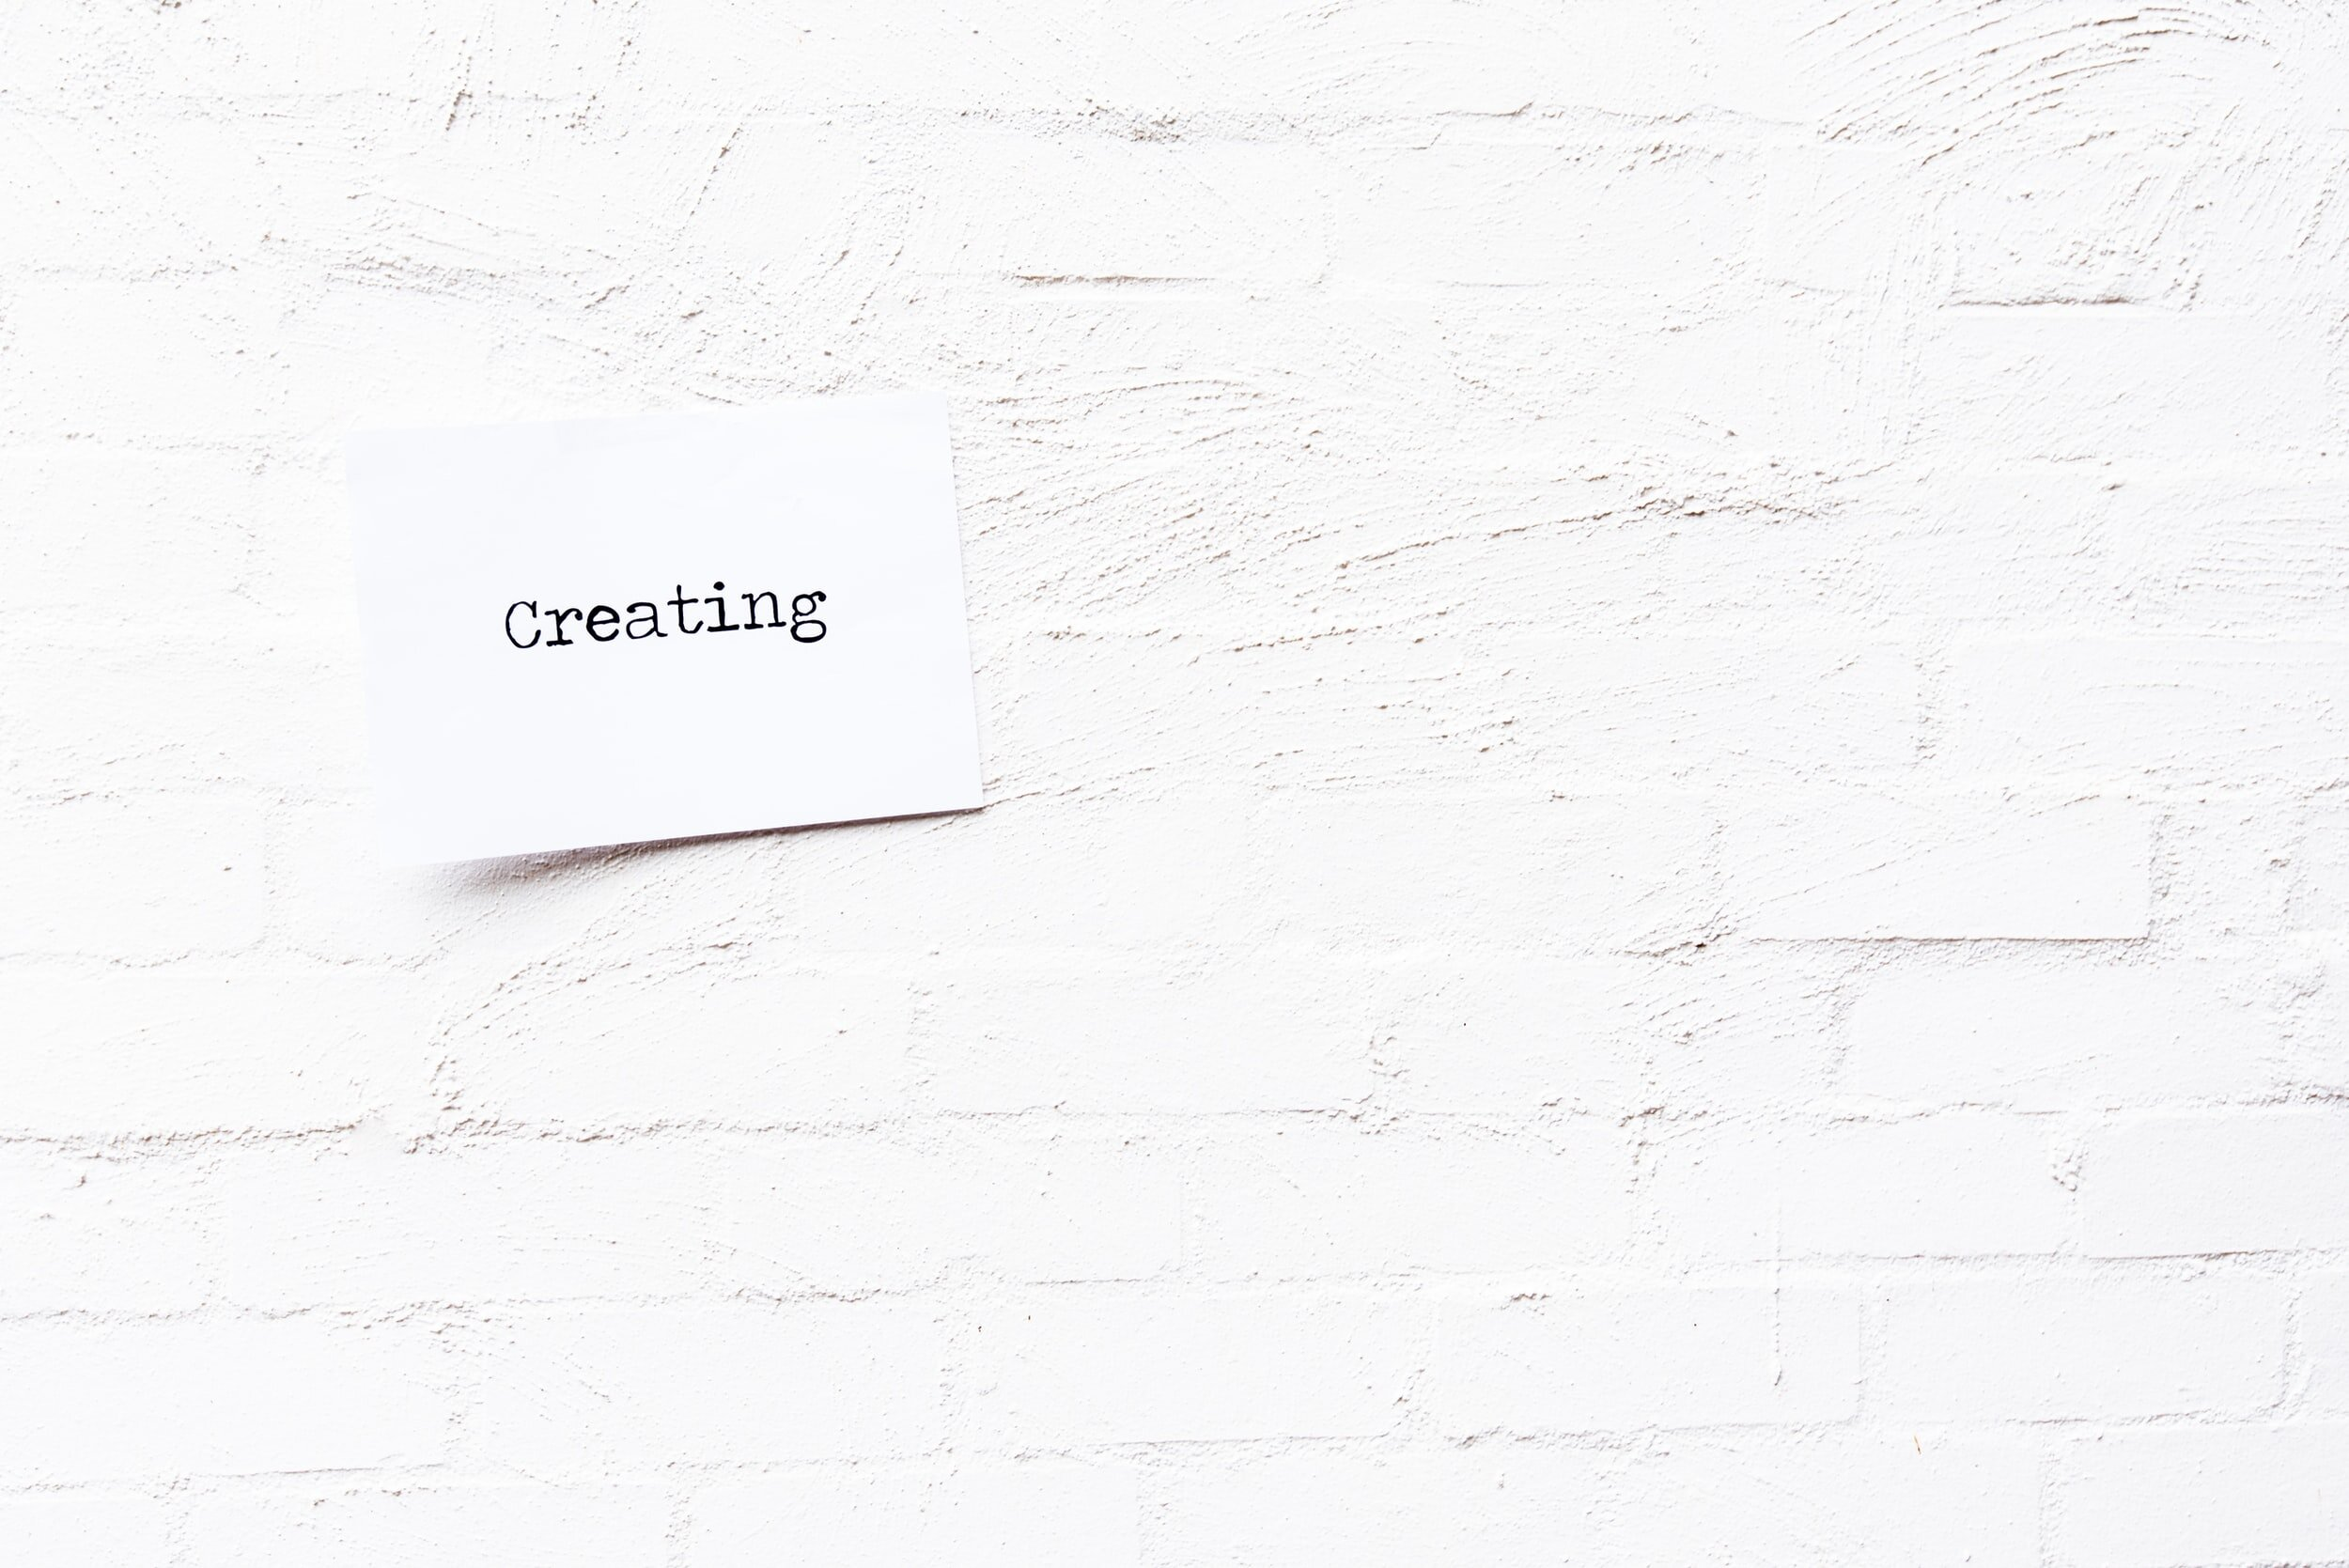 white paper with the word creating on it stuck to a white brick wall